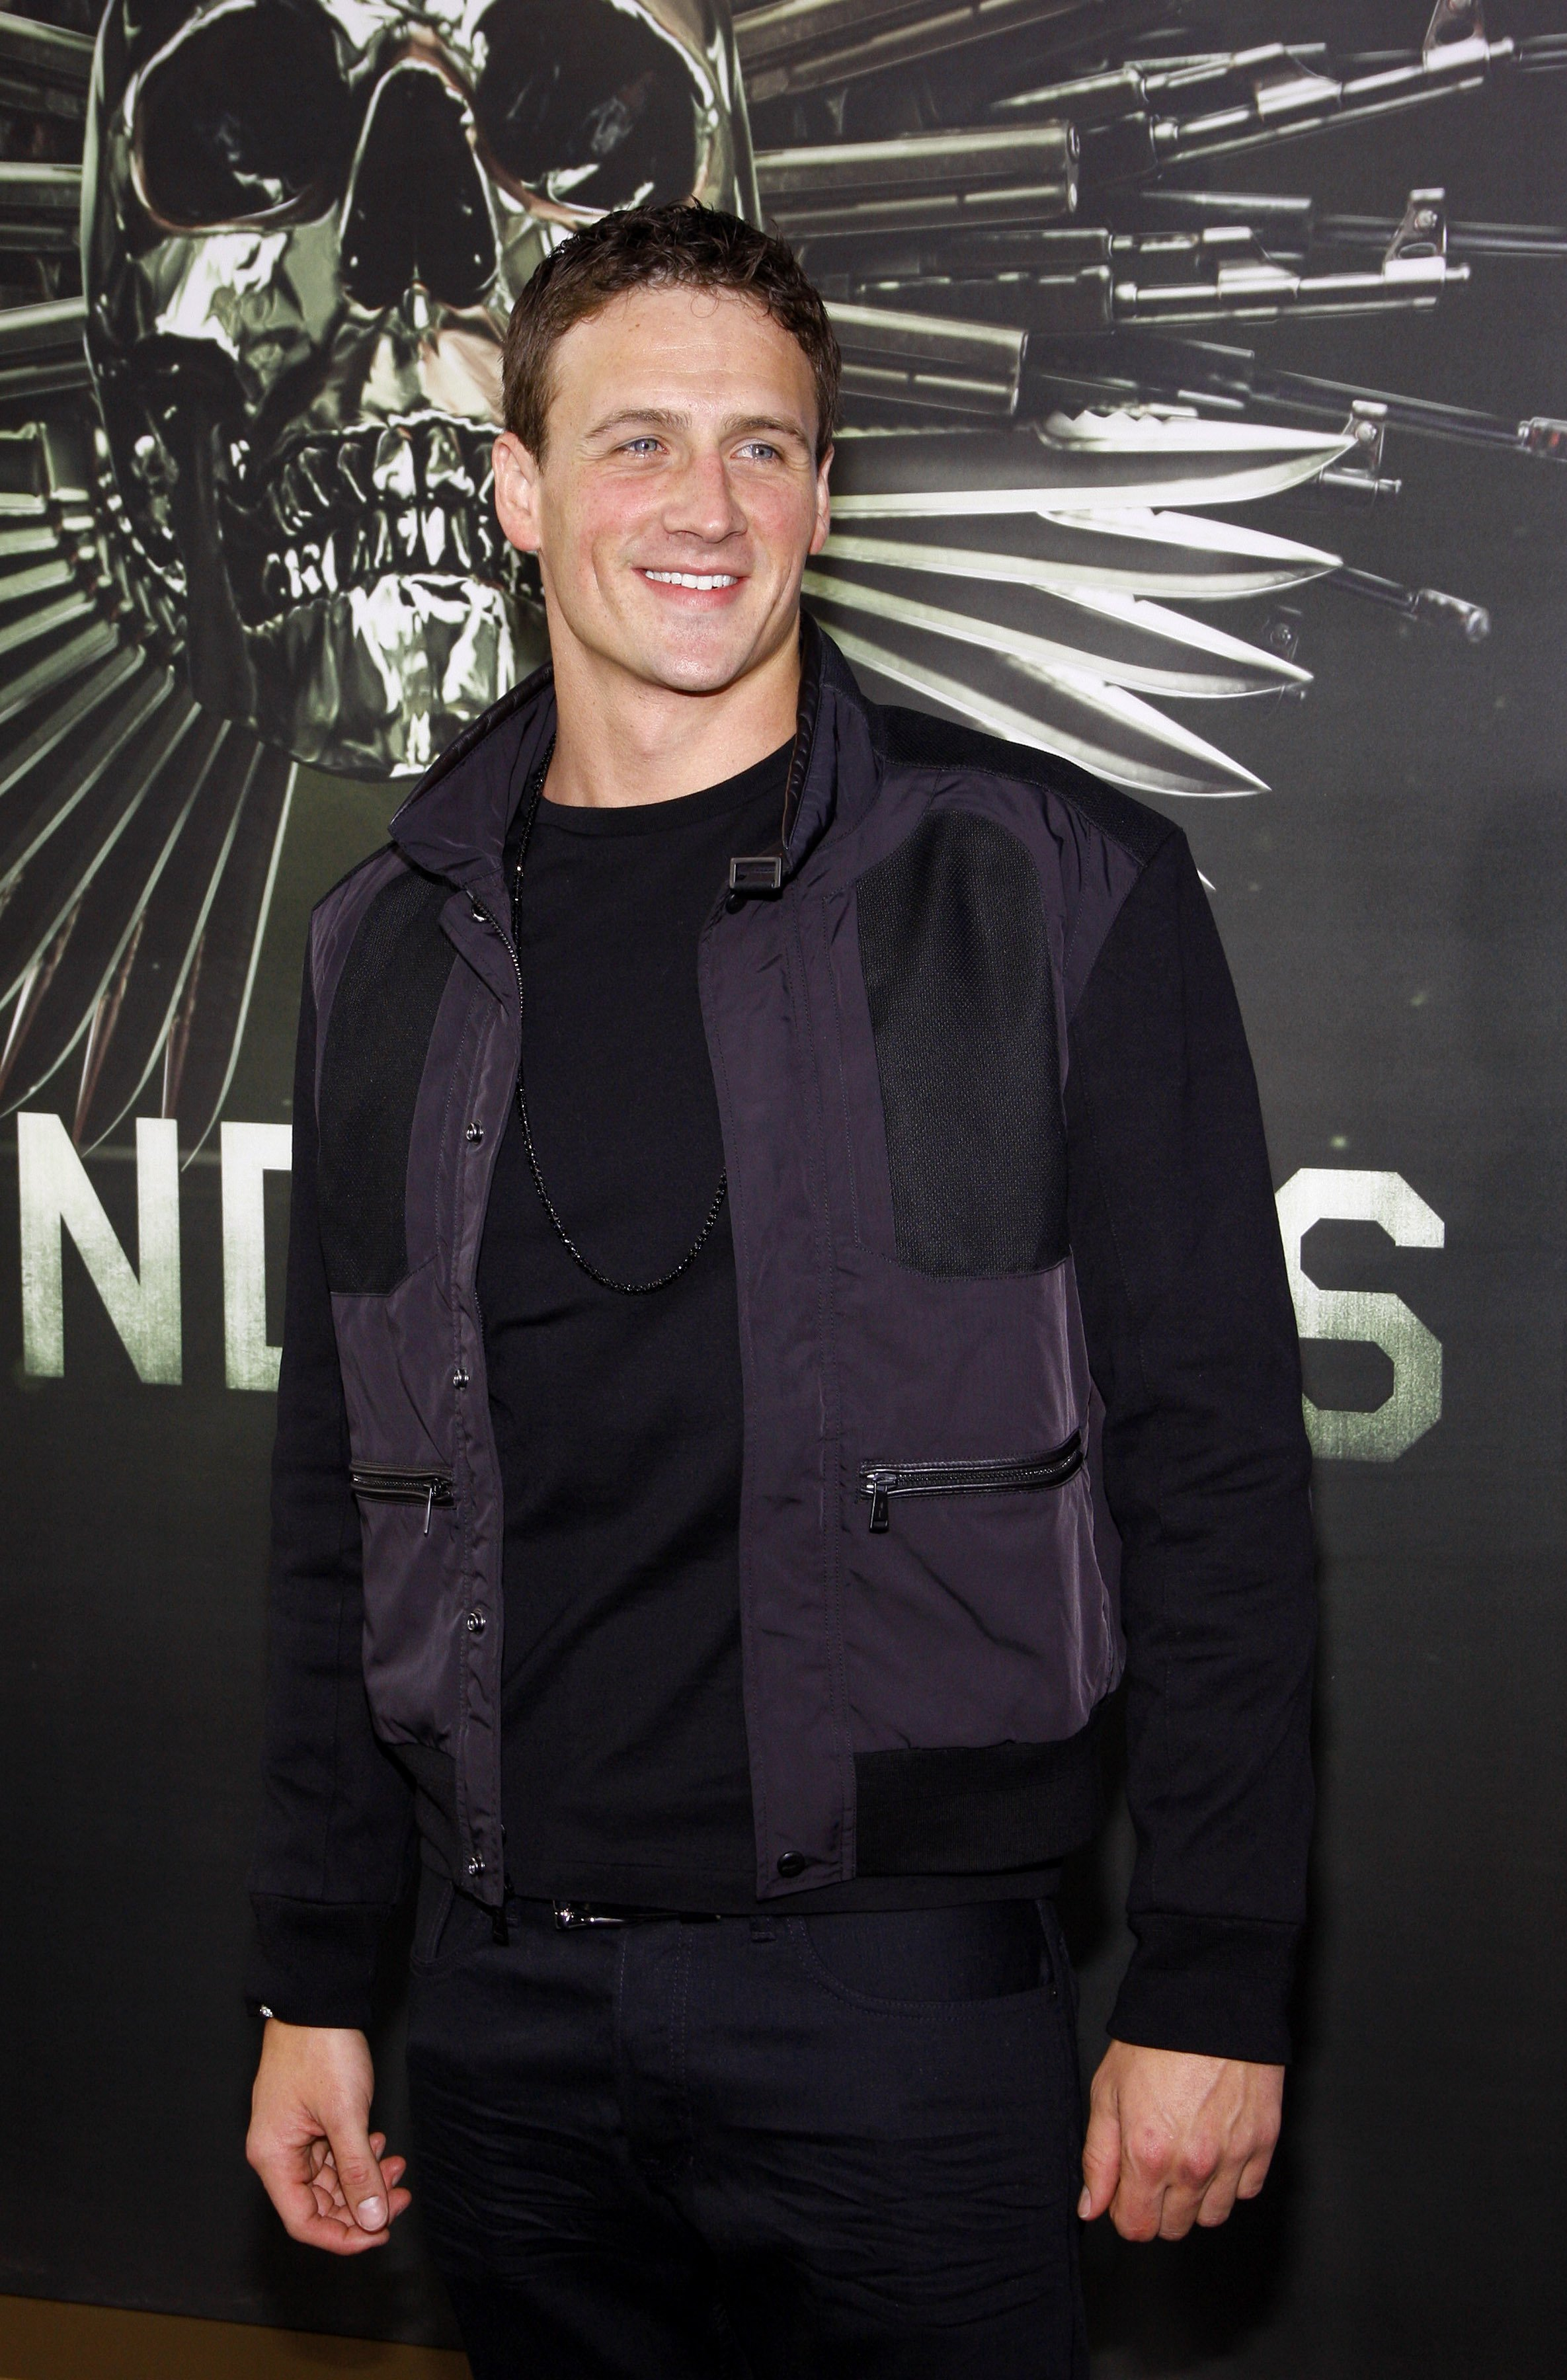 """Ryan Lochte was at the premiere of """"Expendables 2"""" at the Grauman's Chinese Theatre in Los Angeles in 2012. 